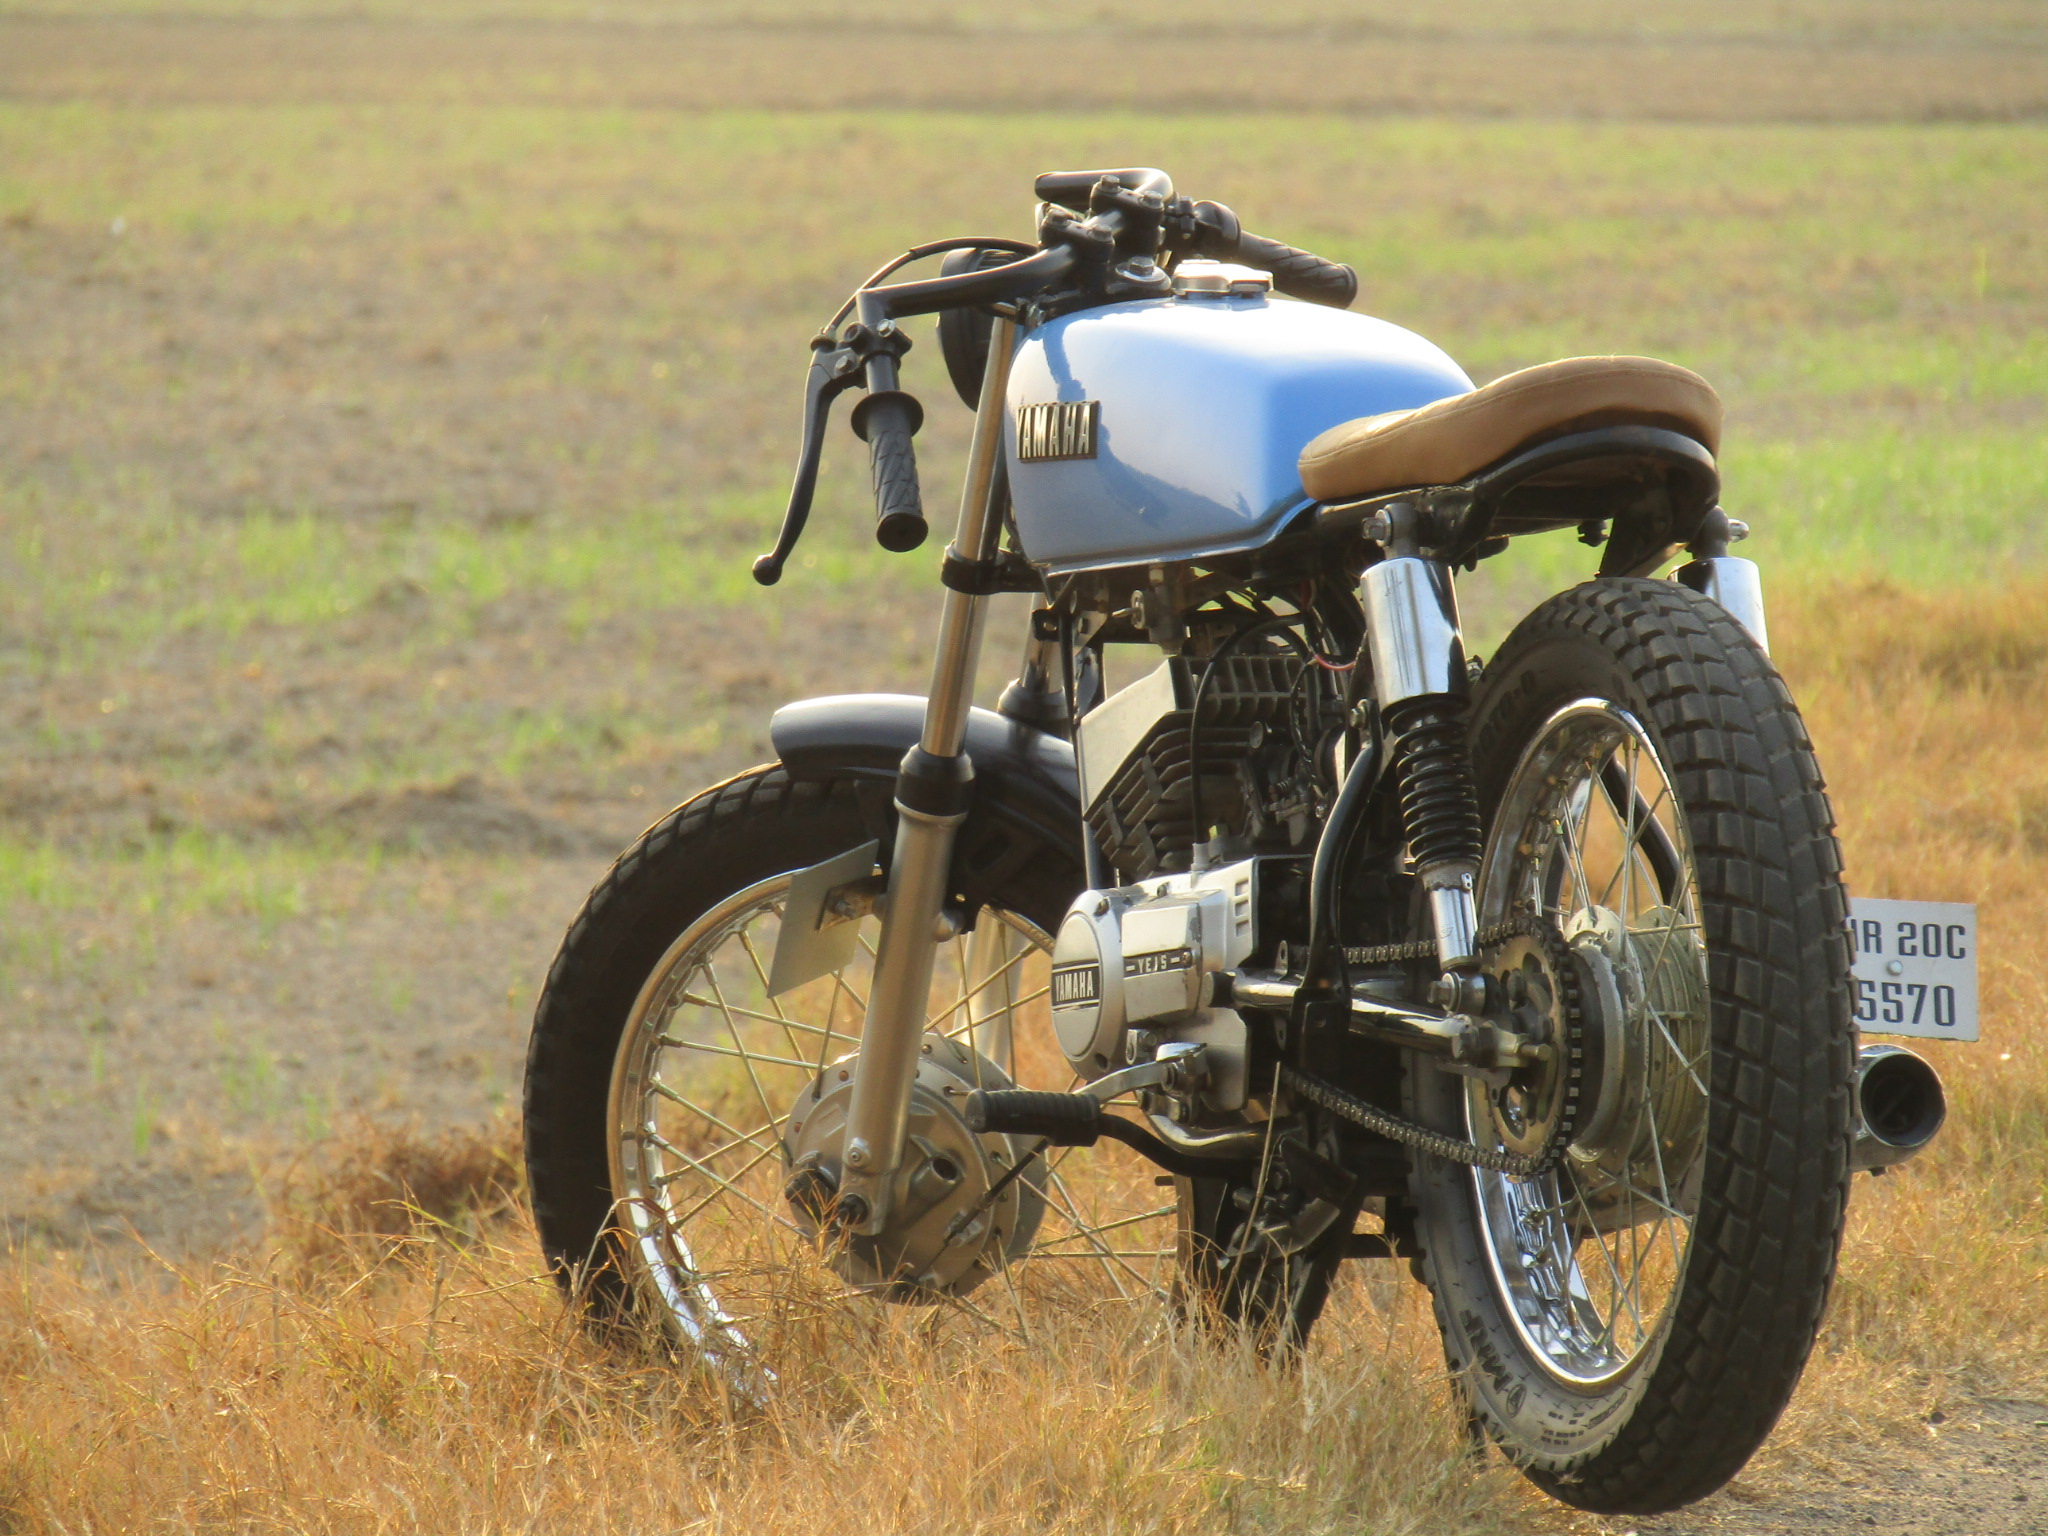 Modified Yamaha RX 100 Cafe Racer